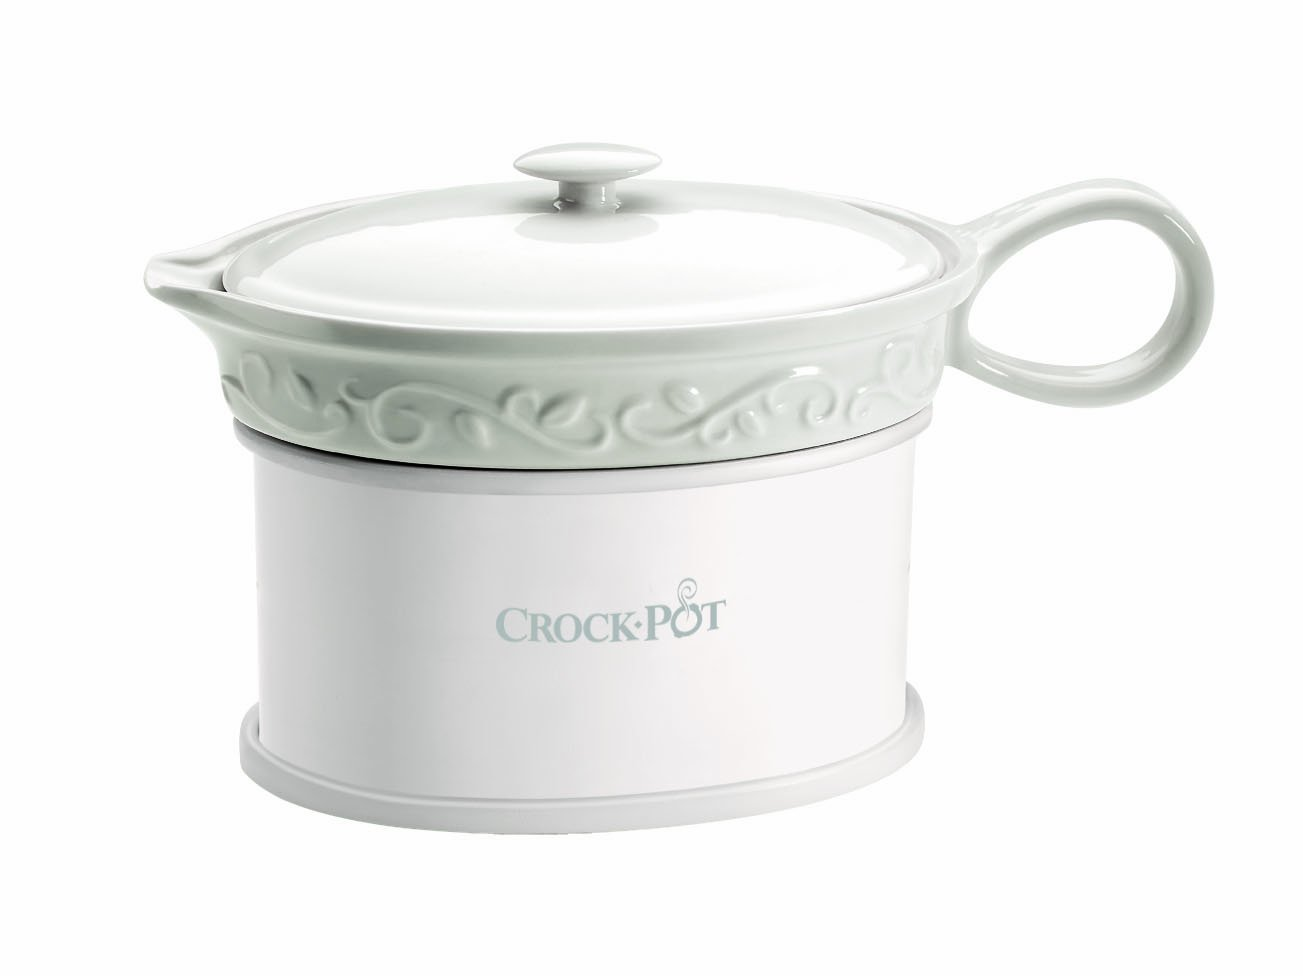 7 Crockpot Accessories You Didn't Know You Needed | www.onecrazyhouse.com